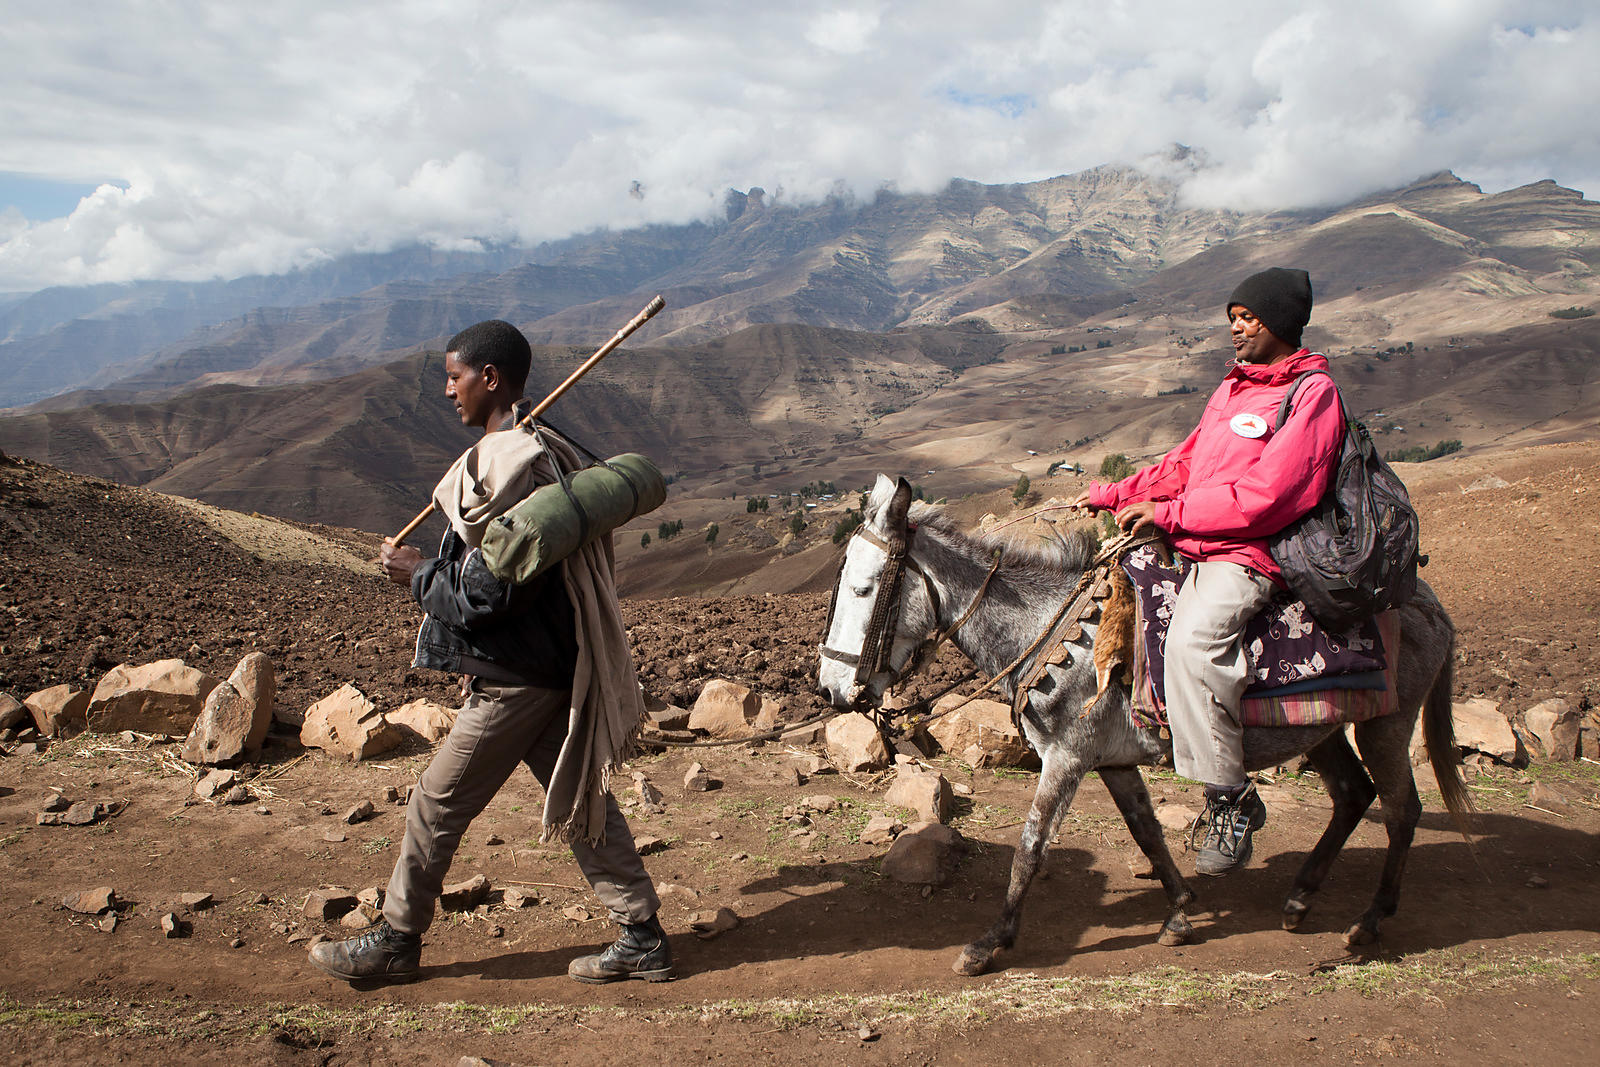 Getou, infirmier-docteur pour l'association Simien Mountaim Medical Mobile Services  se déplace de village en village dans les montagnes Simien accompagné par un muletier et dort dans sa tente, Éthiopie / Getou, Nurse-Doctor for the Simien Association Mountaim Medical Mobile Services moves from village to village in the Simien Mountains accompanied by a muleteer and sleeps in his tent, Ethiopia